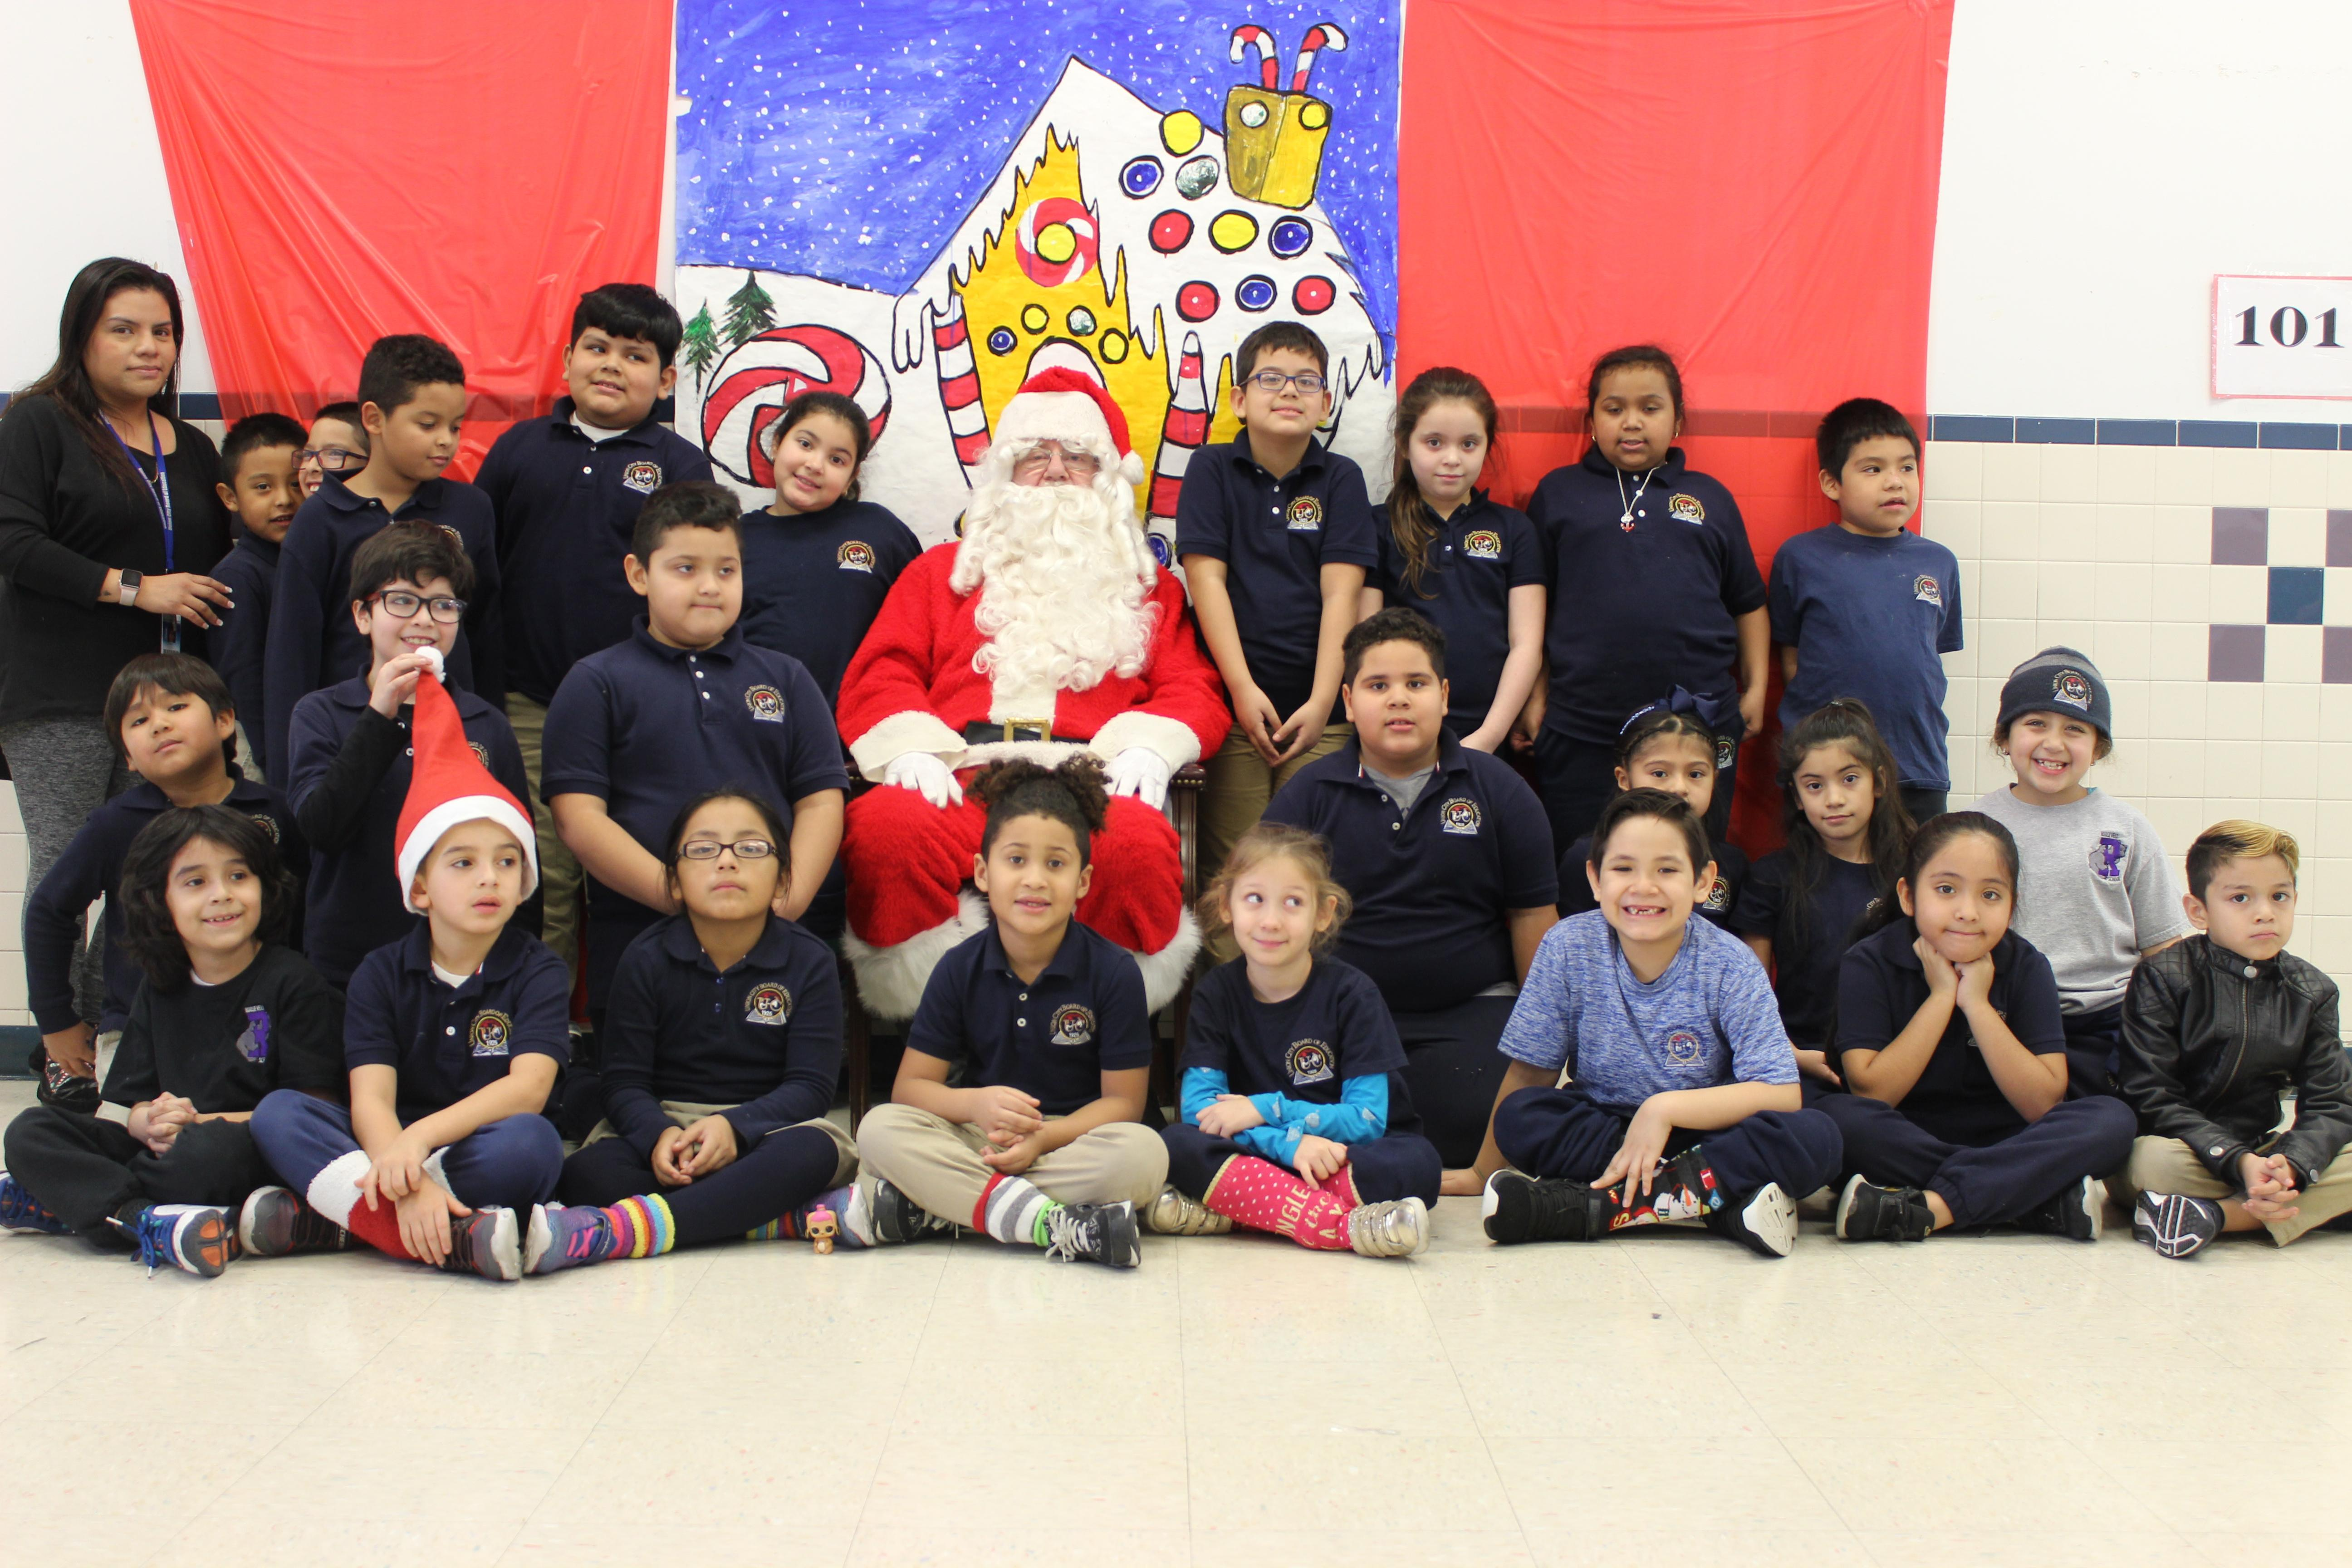 4th grade class with teacher and aides posing with santa